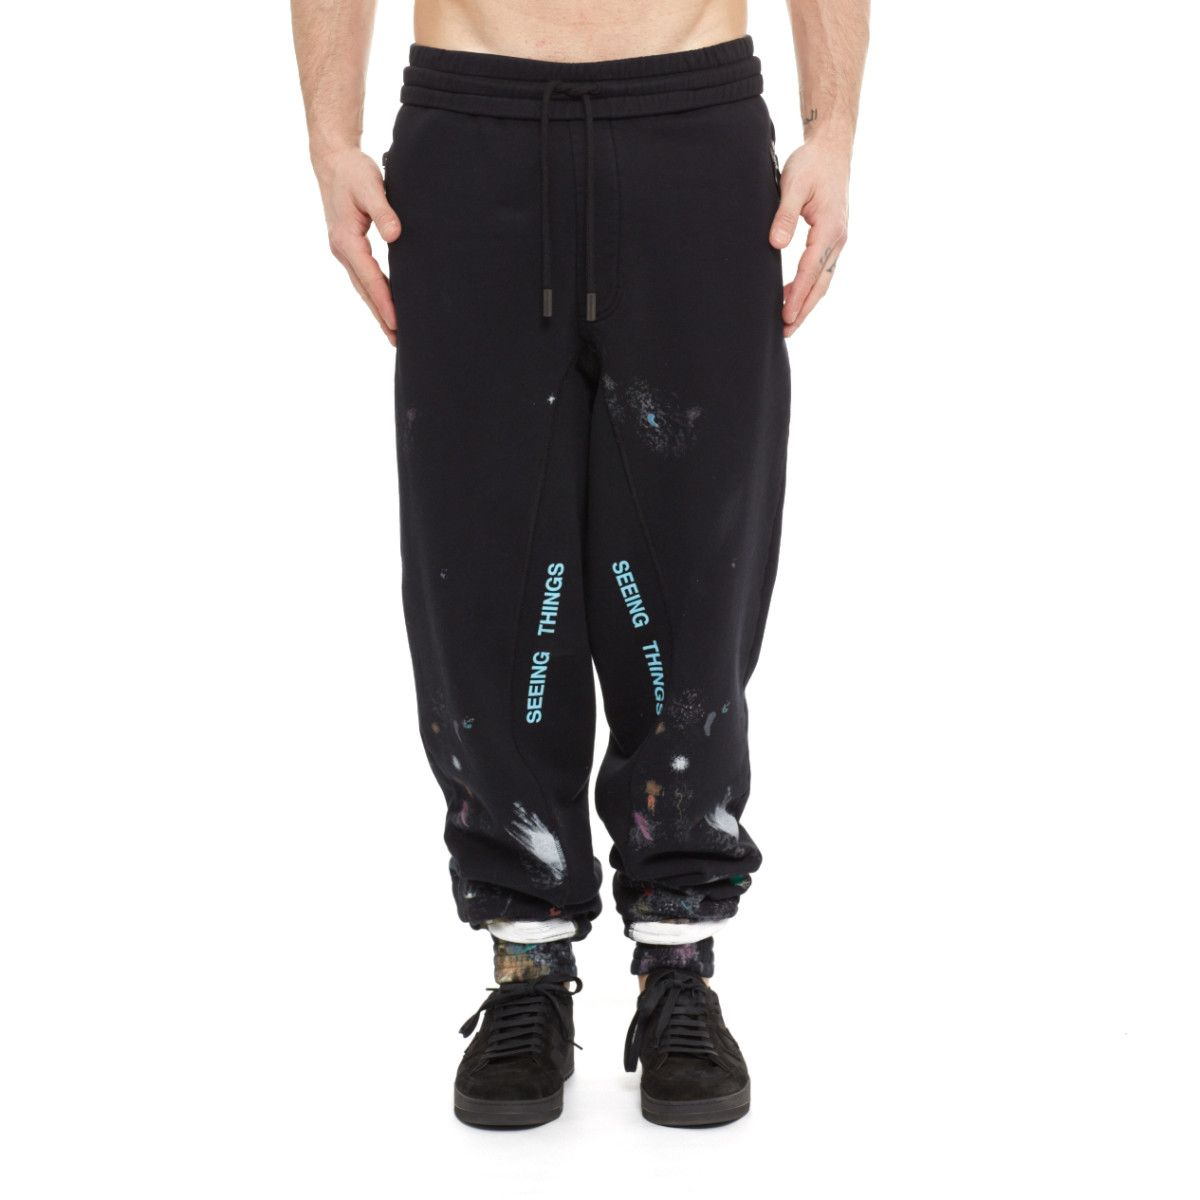 61176992 Diagonal galaxy brushed pants from the F/W2017-18 Off-White c/o Virgil  Abloh collection in black